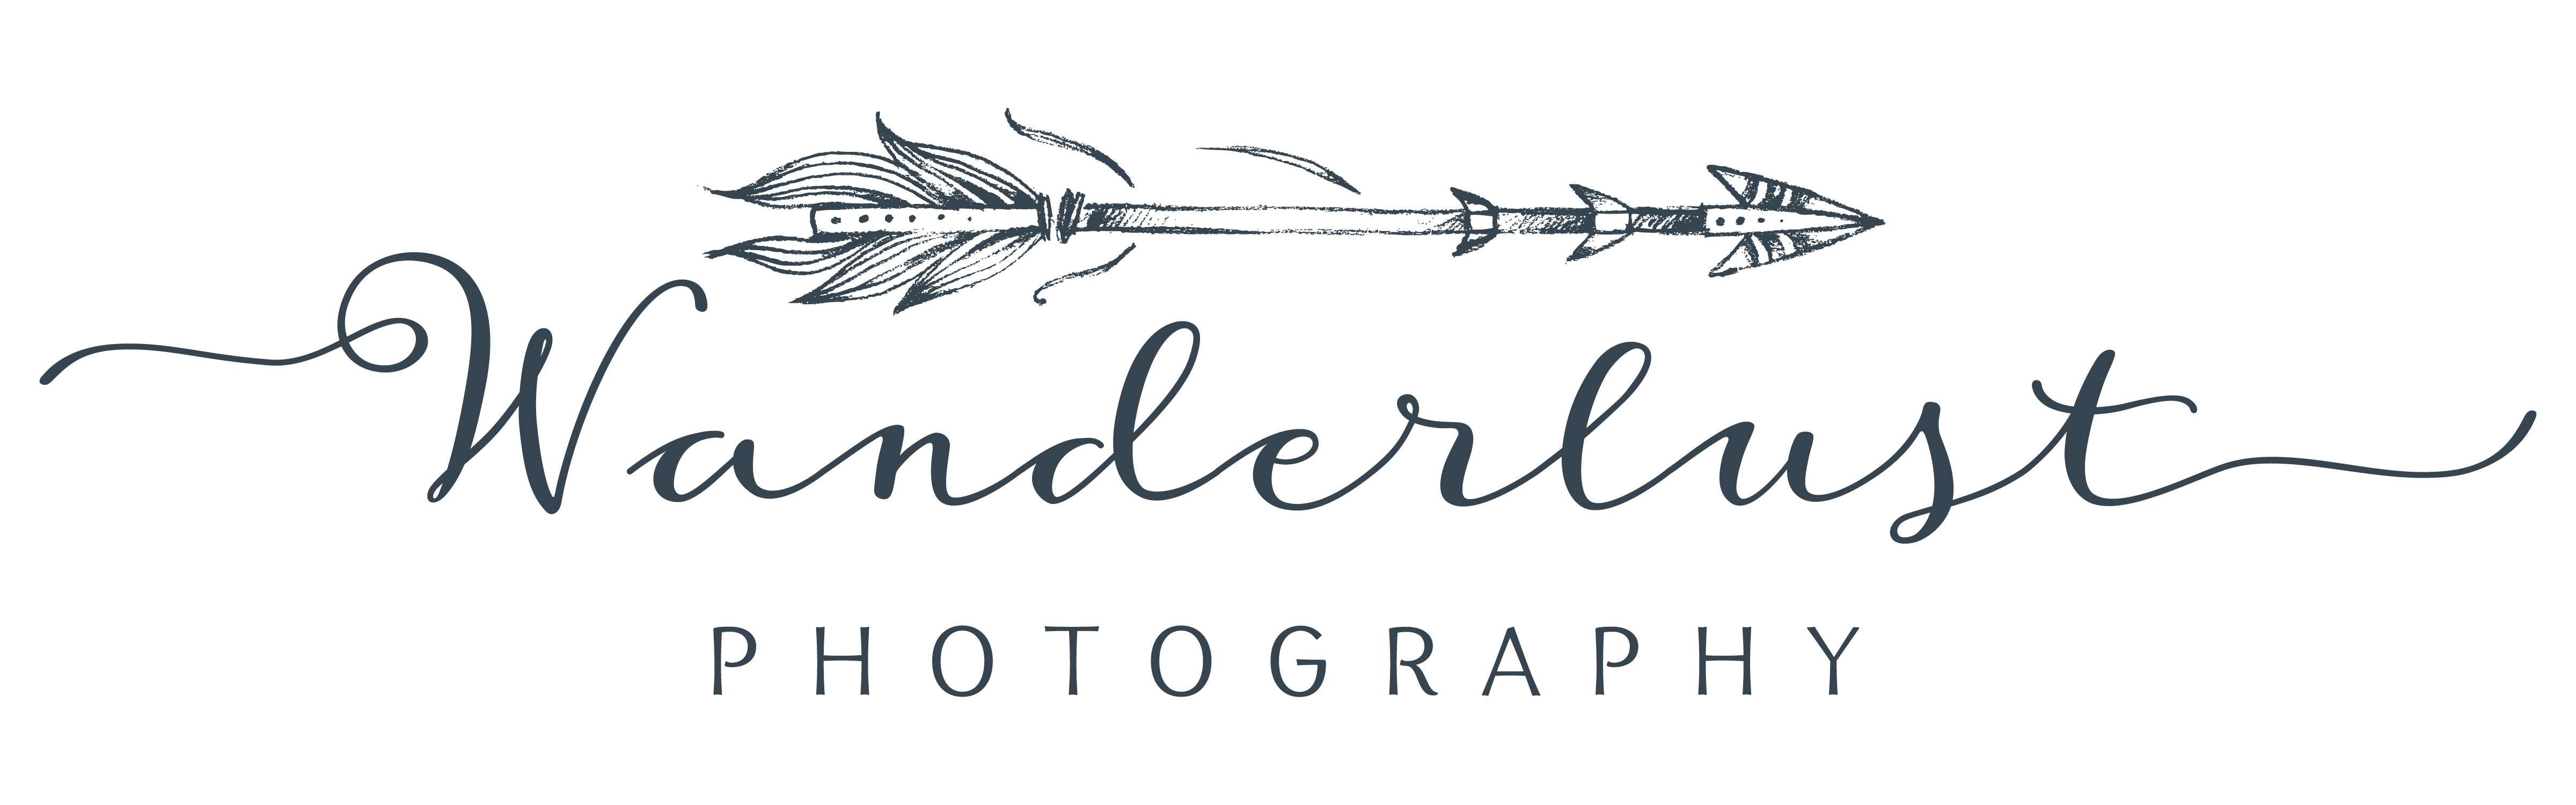 Wanderlust Photography